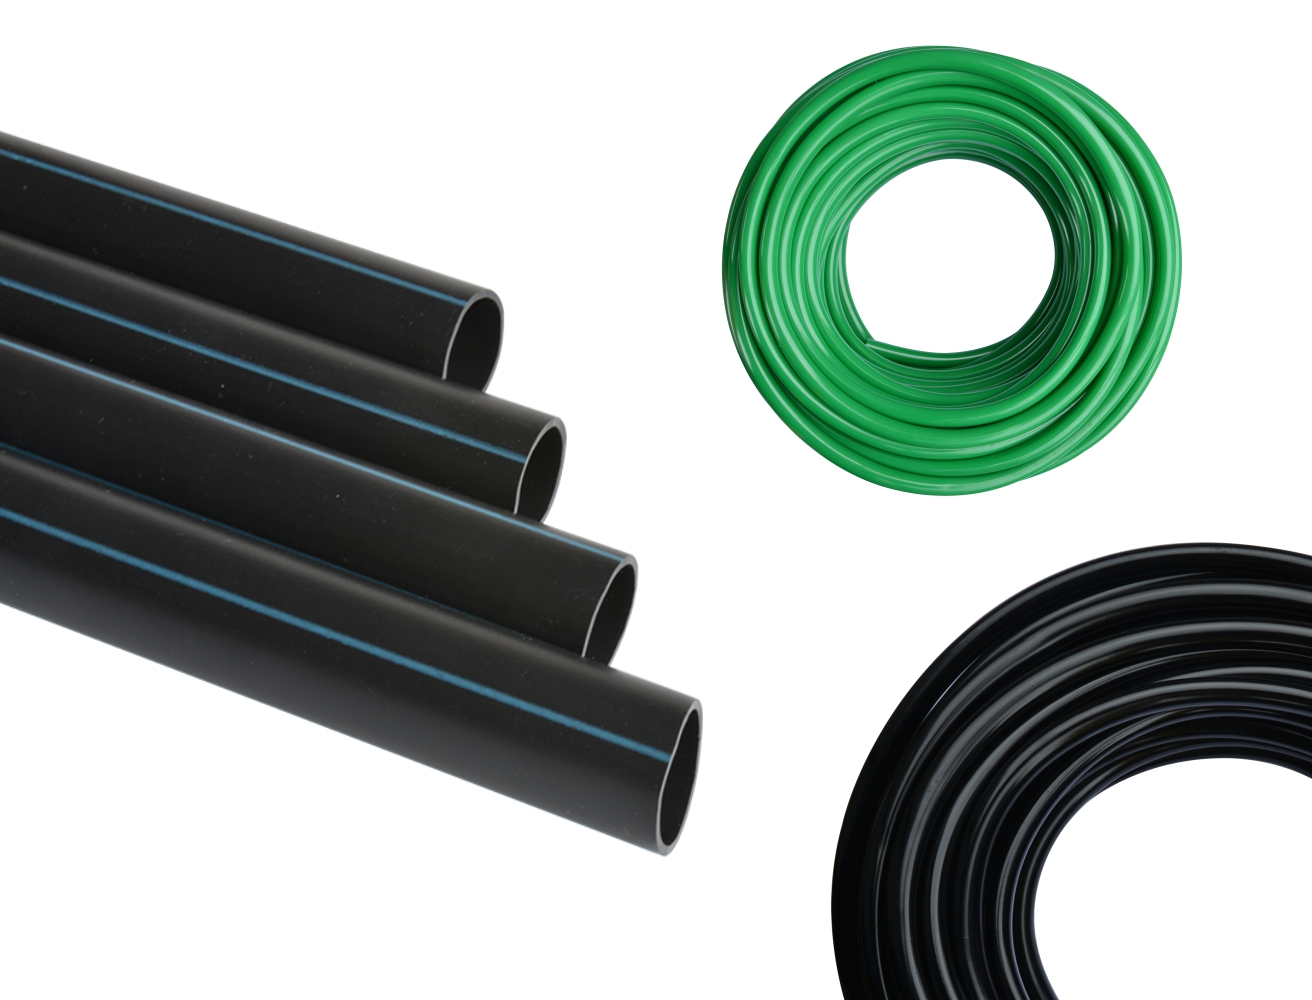 PVC and PE pipes